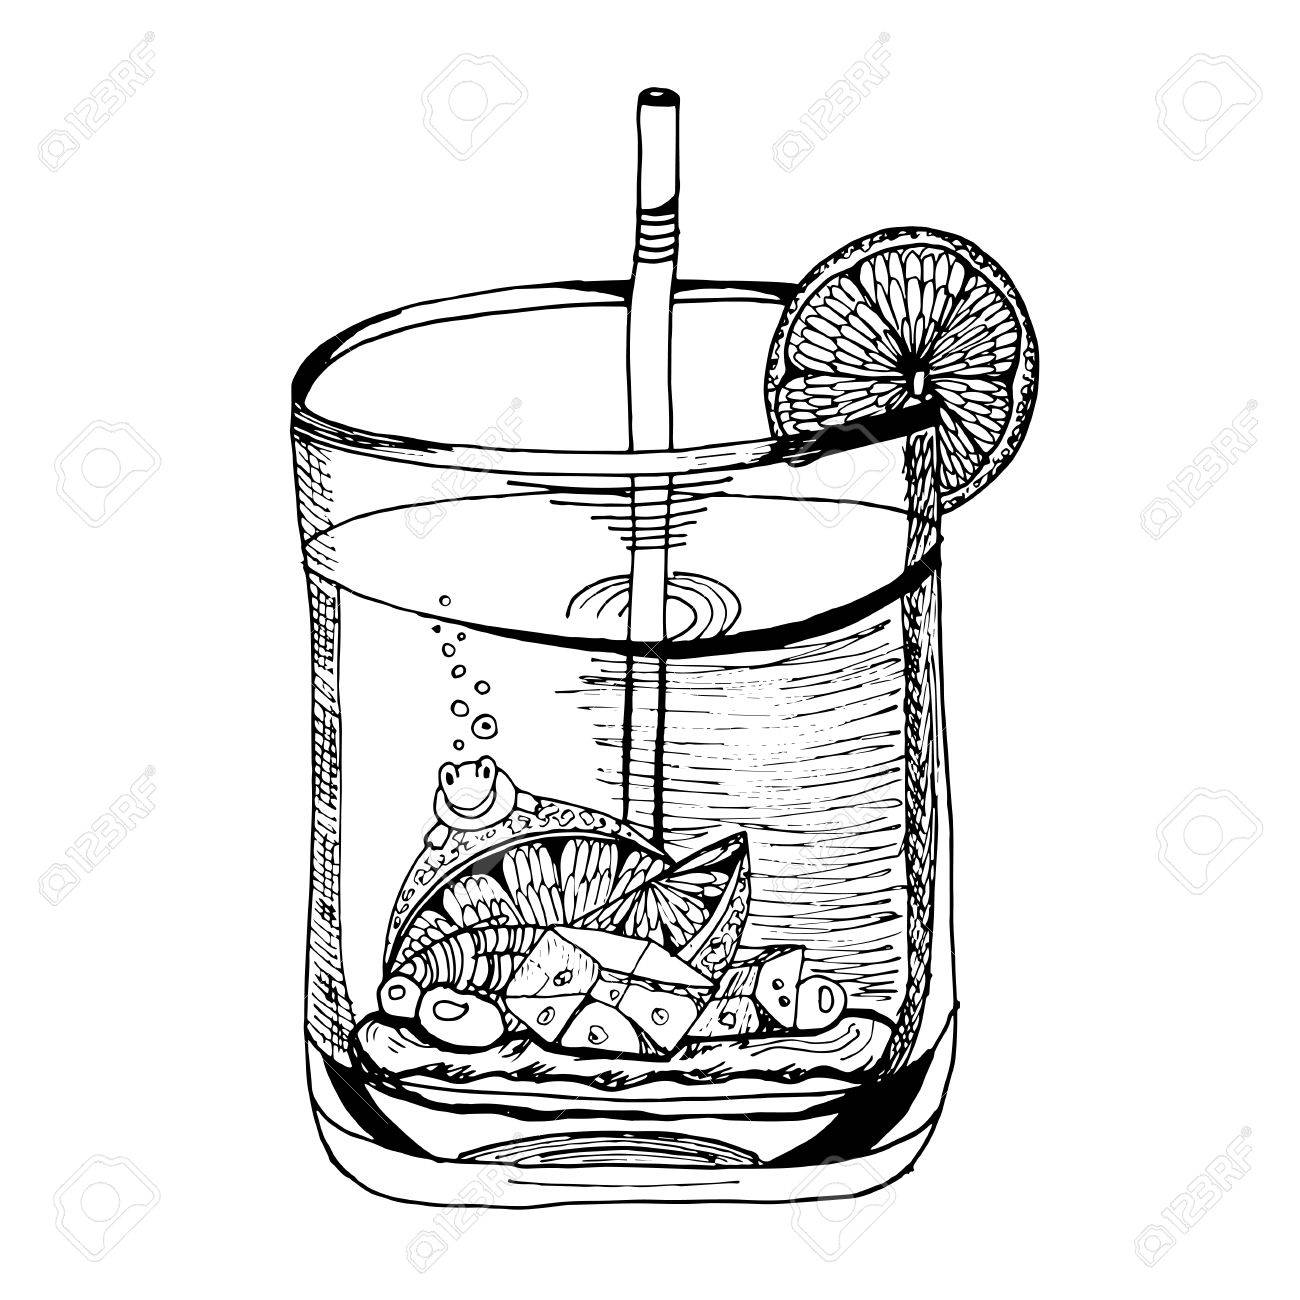 1300x1300 Glass Cup With A Drink Inside Royalty Free Cliparts, Vectors,